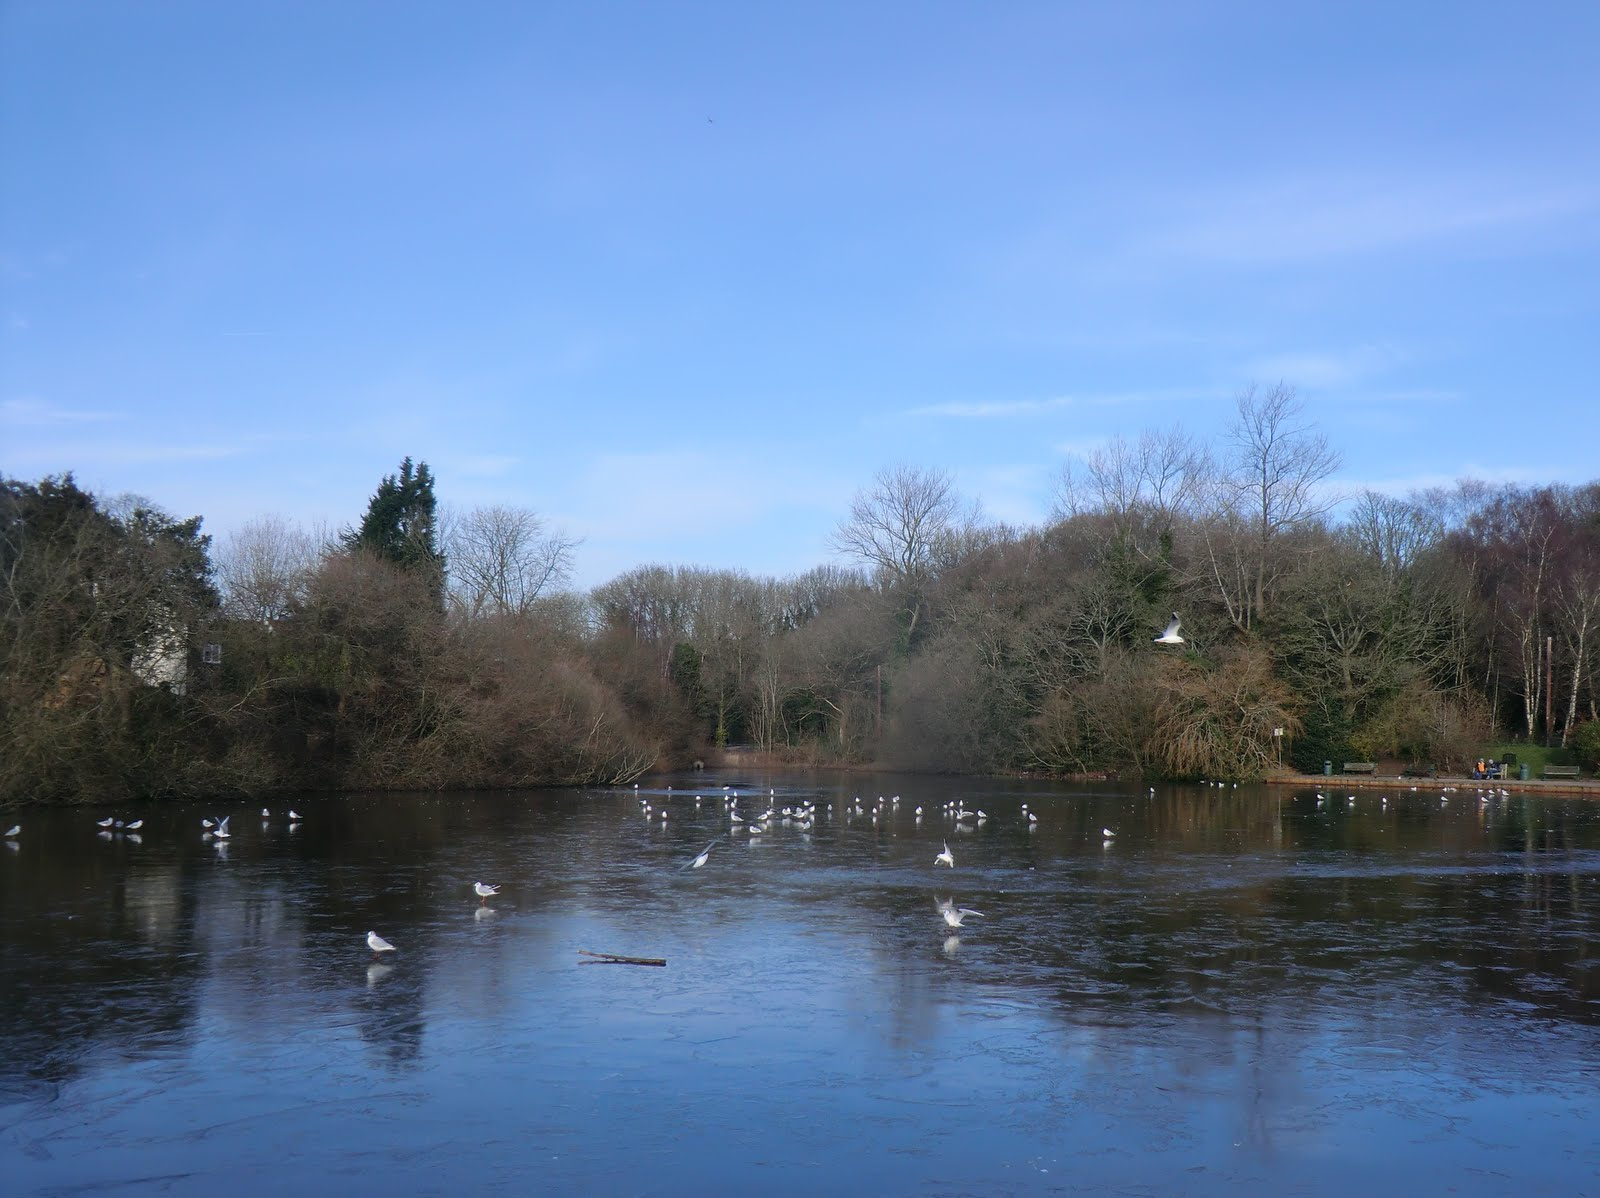 CIMG2222 Mere Pond in winter, Walton-on-the-Hill